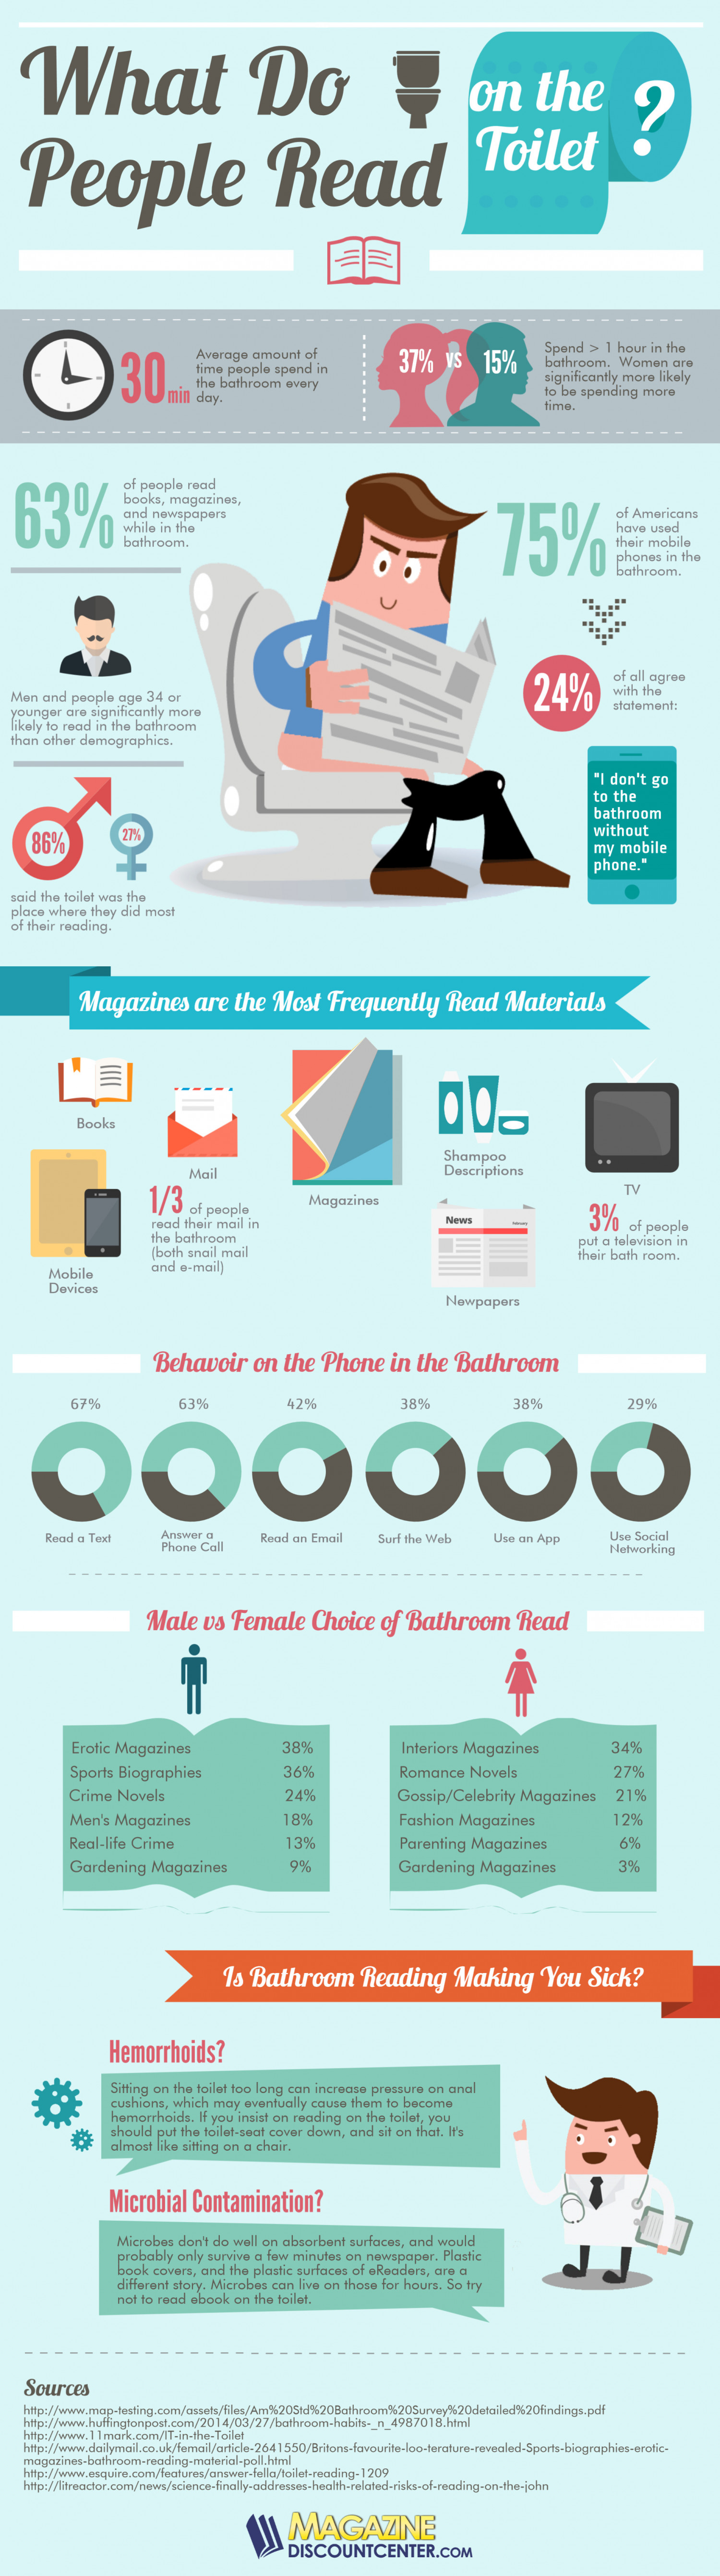 What Do People Read on the Toilet? Infographic